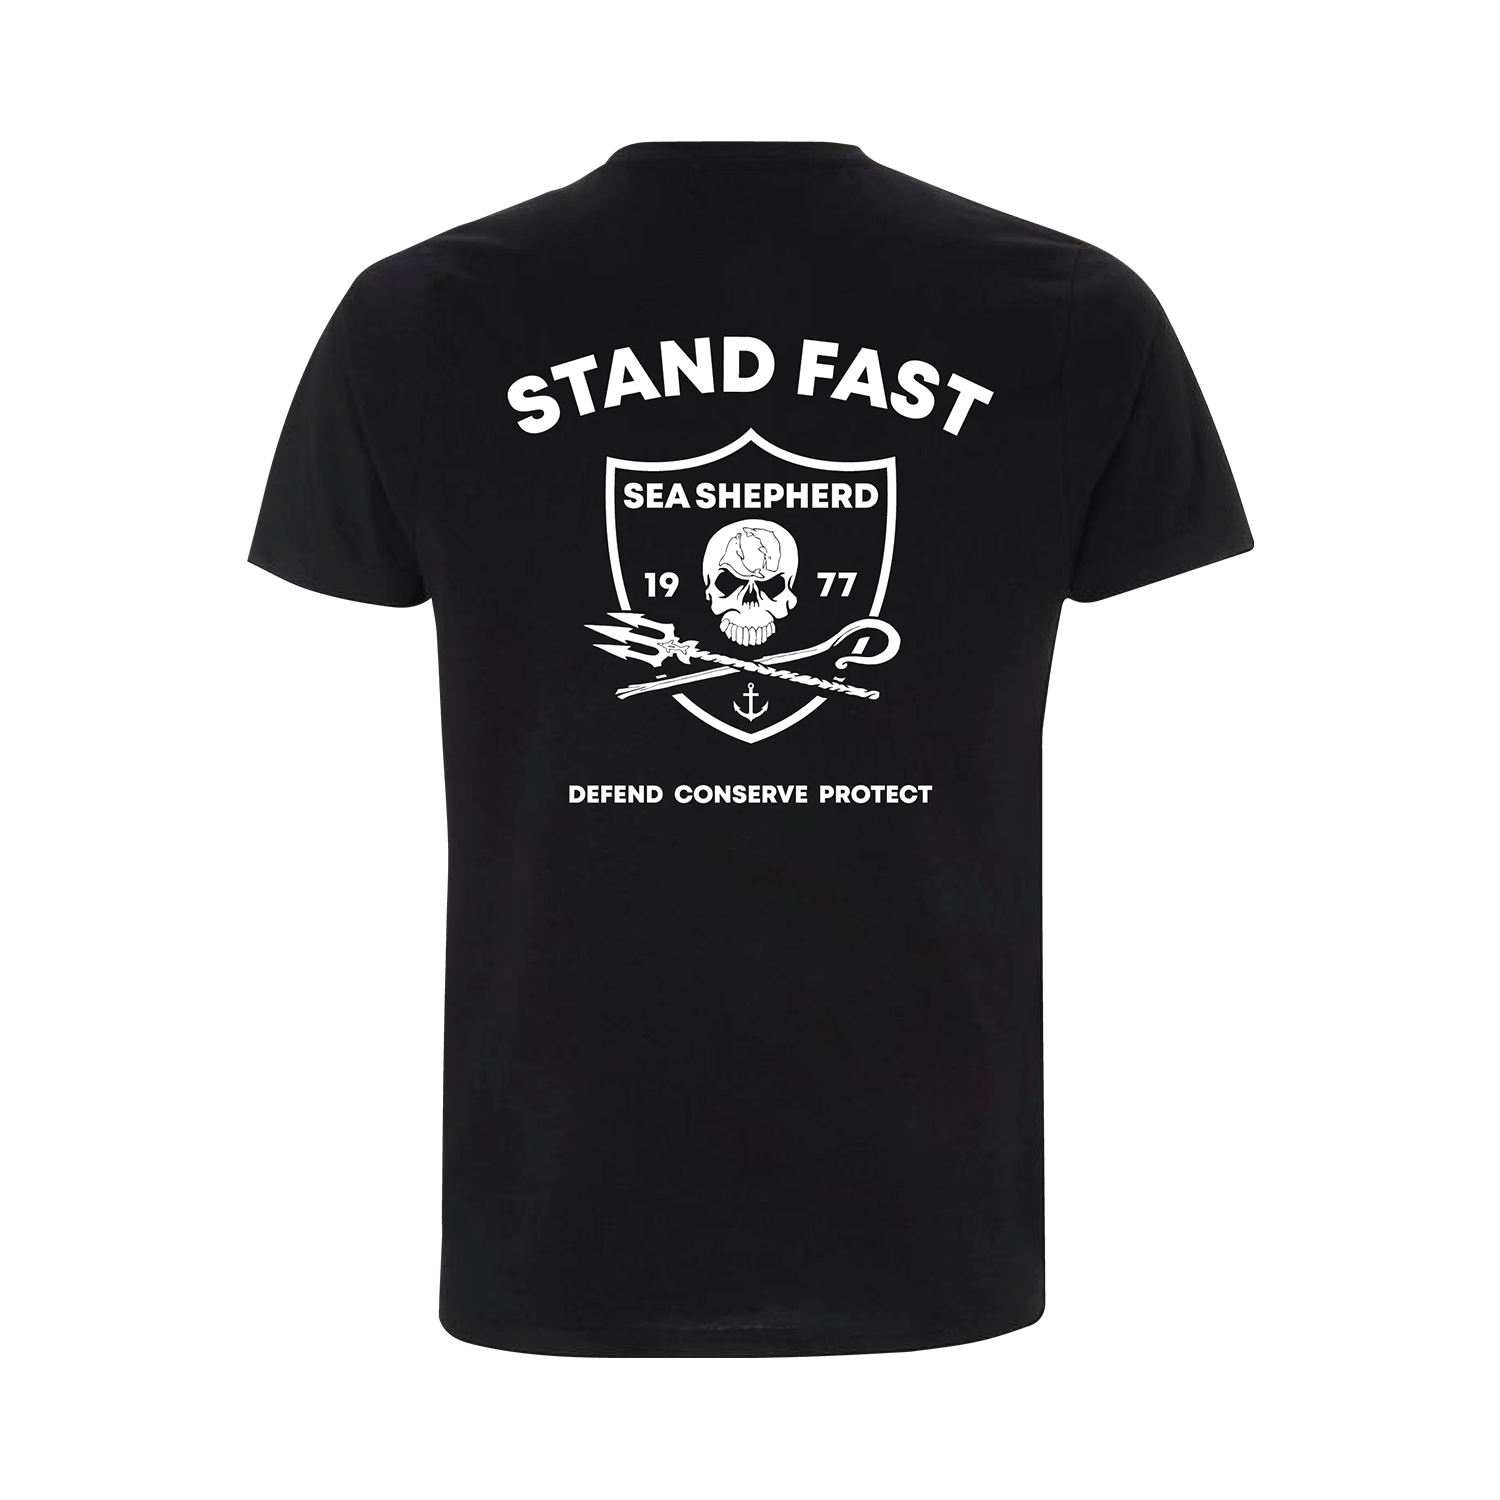 Sea Shepherd - Standfast - Seven Seas Battle - 100% Organic Cotton S/S Tee - Black